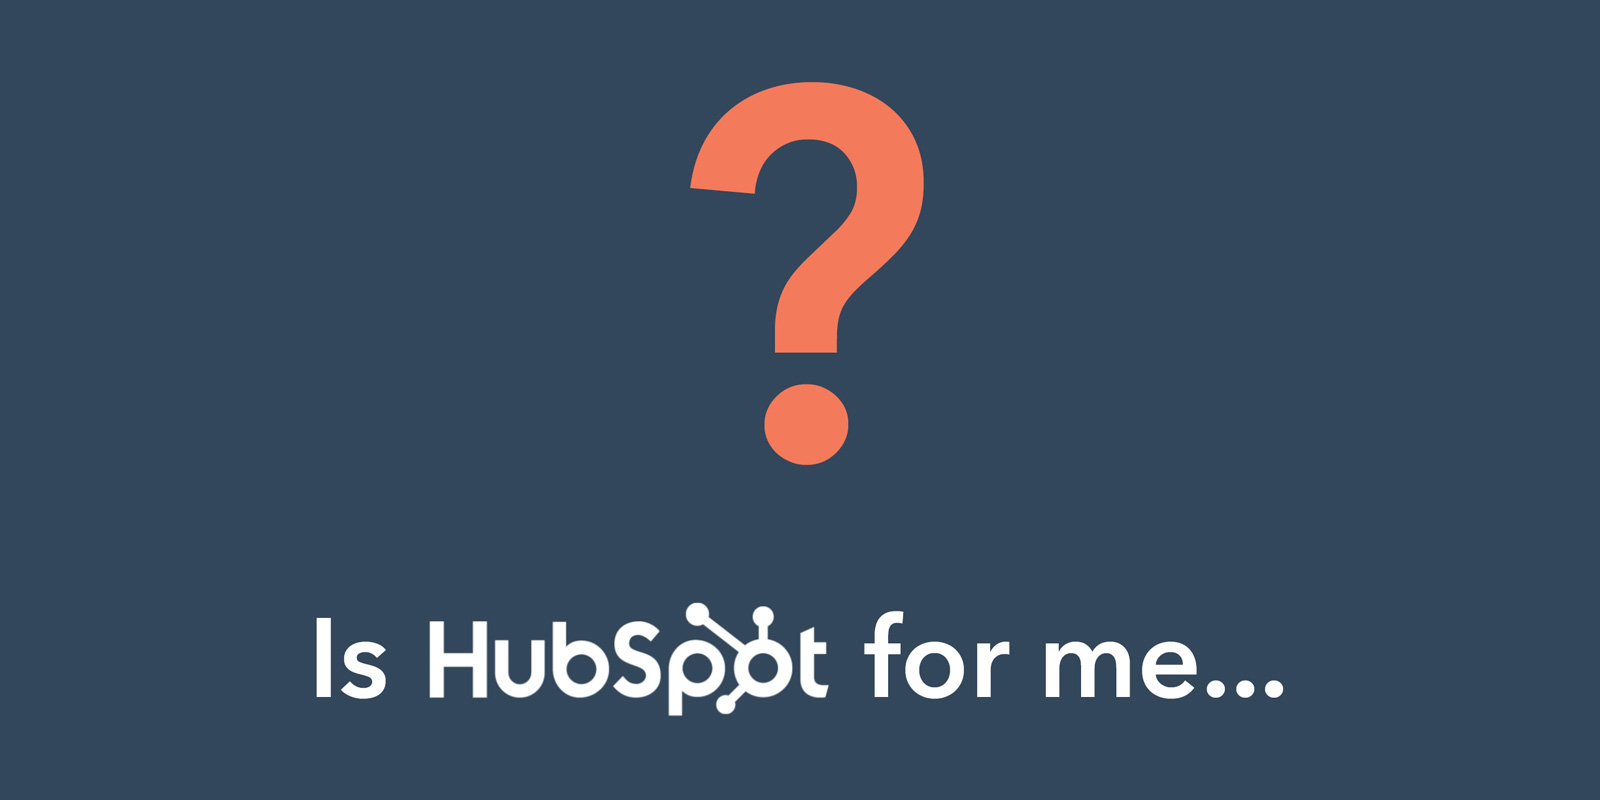 Is HubSpot for me? Image